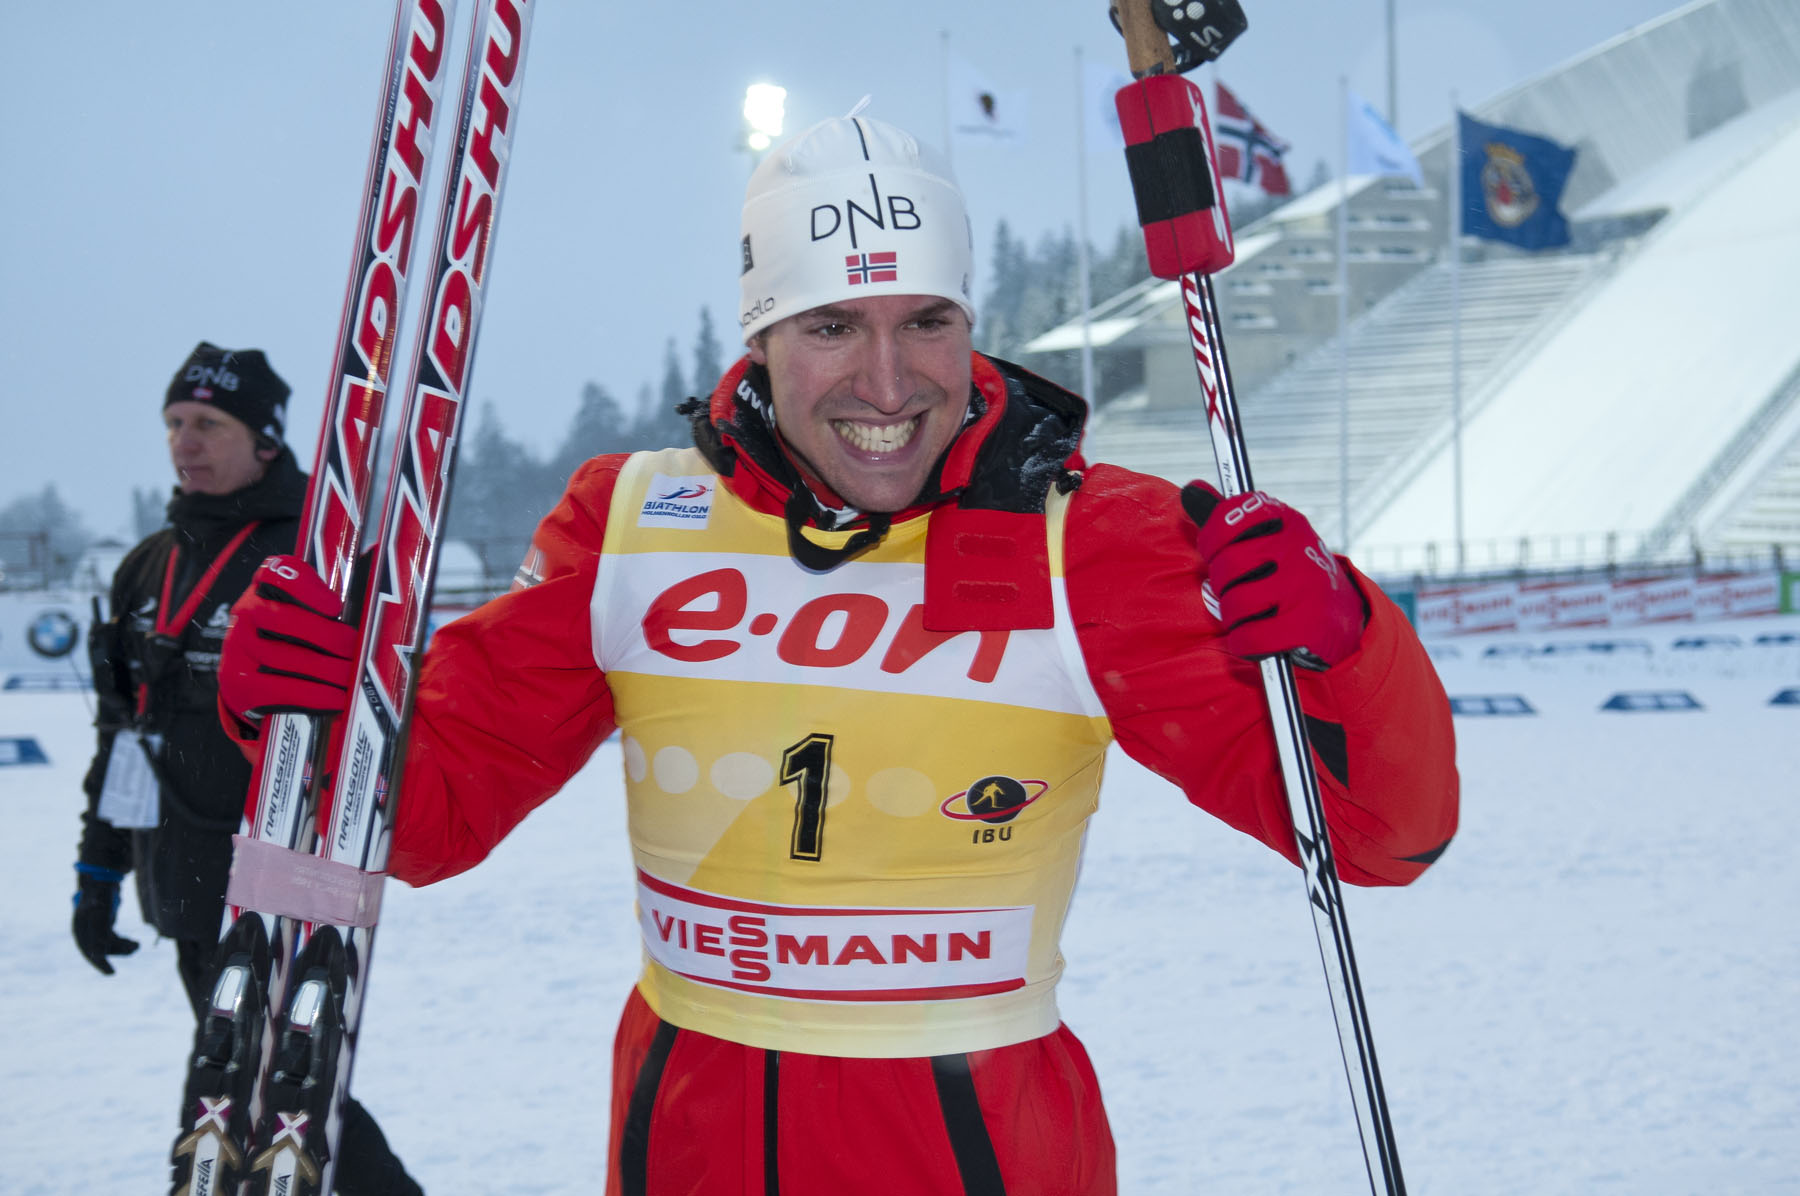 Norway Returns to the Second Place at Winter Olympics 2014